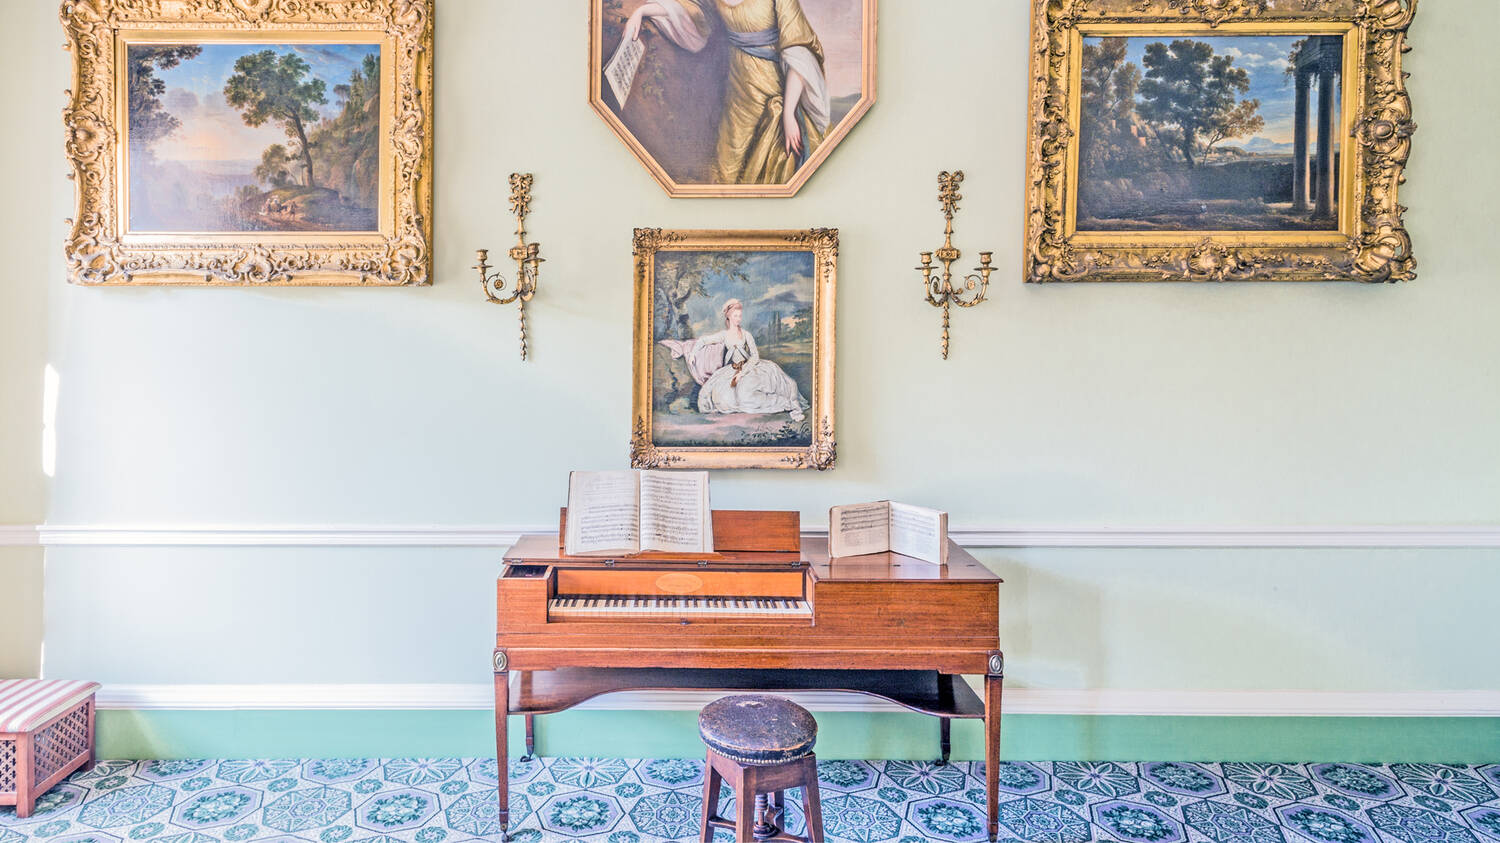 A wooden harpsichord stands in a grand drawing room, with gilt-framed paintings on the wall behind. A stool sits before the harpsichord and sheet music rests on top.